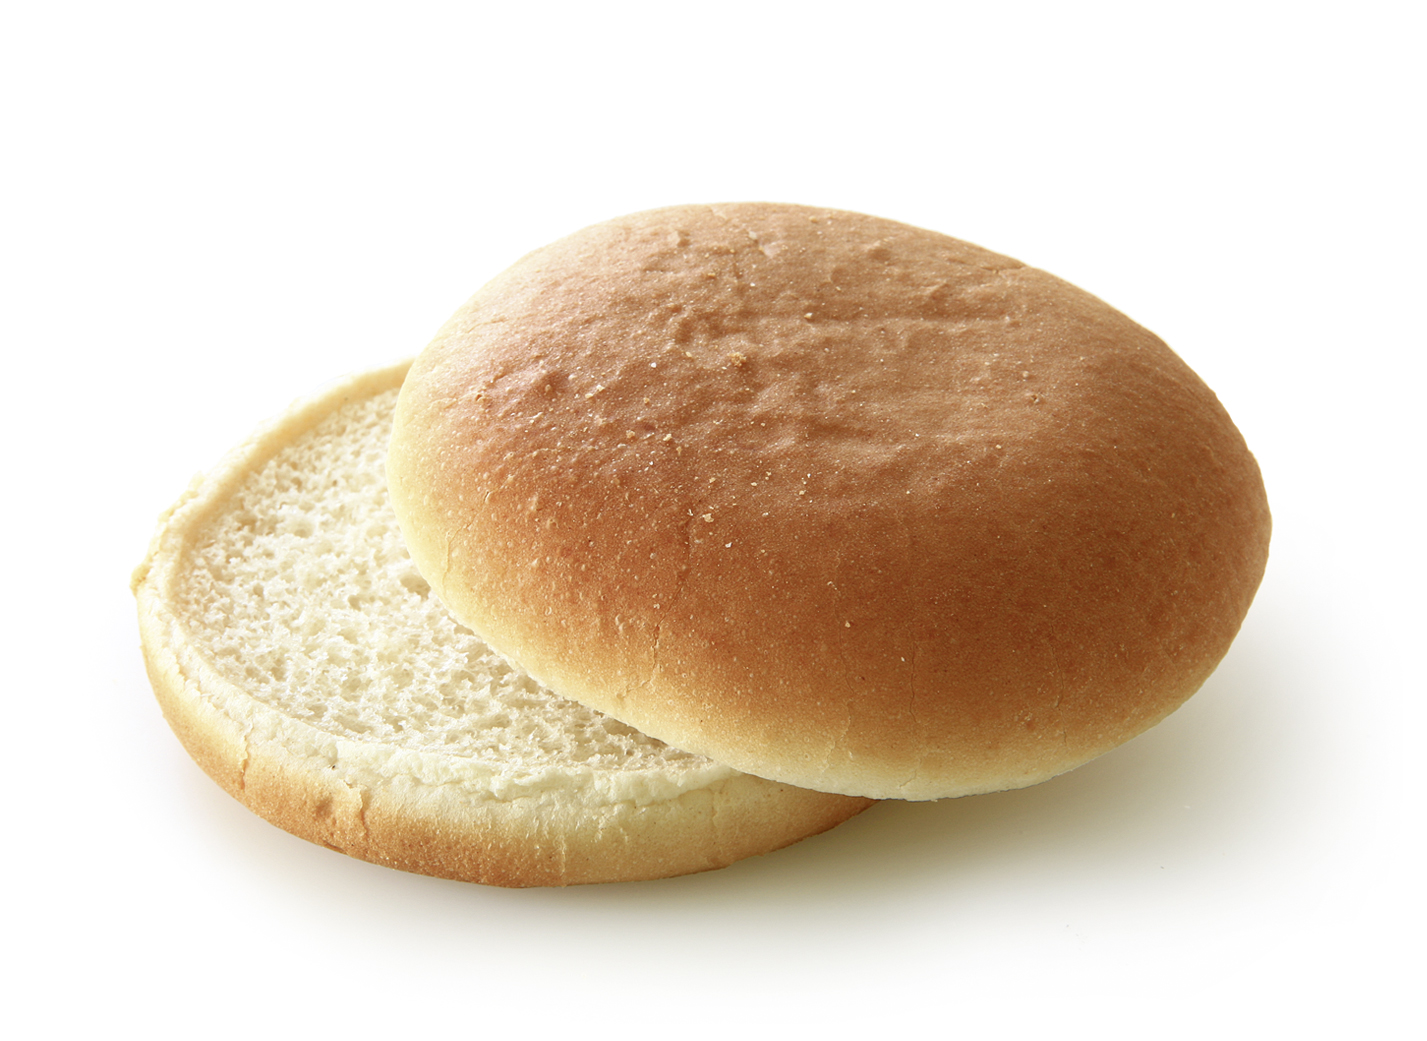 Hamburger natural, sliced - Wheat roll/ traditional shape/ thaw only diameter: 10 cm/ 4 Inches